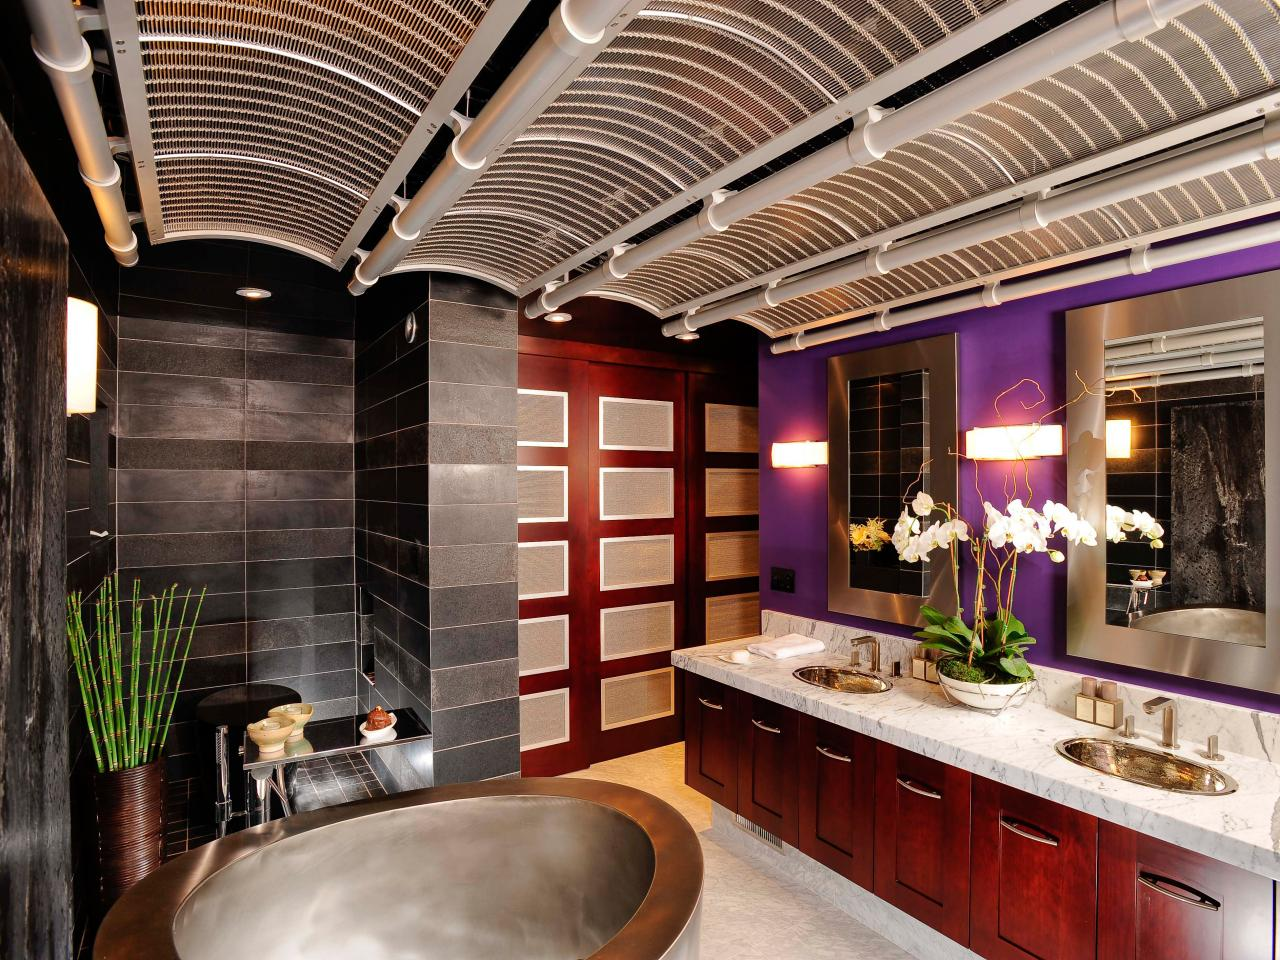 Asian design ideas interior design styles and color schemes for home decorating hgtv - Amazing contemporary bathroom design ideas at lovely home ...